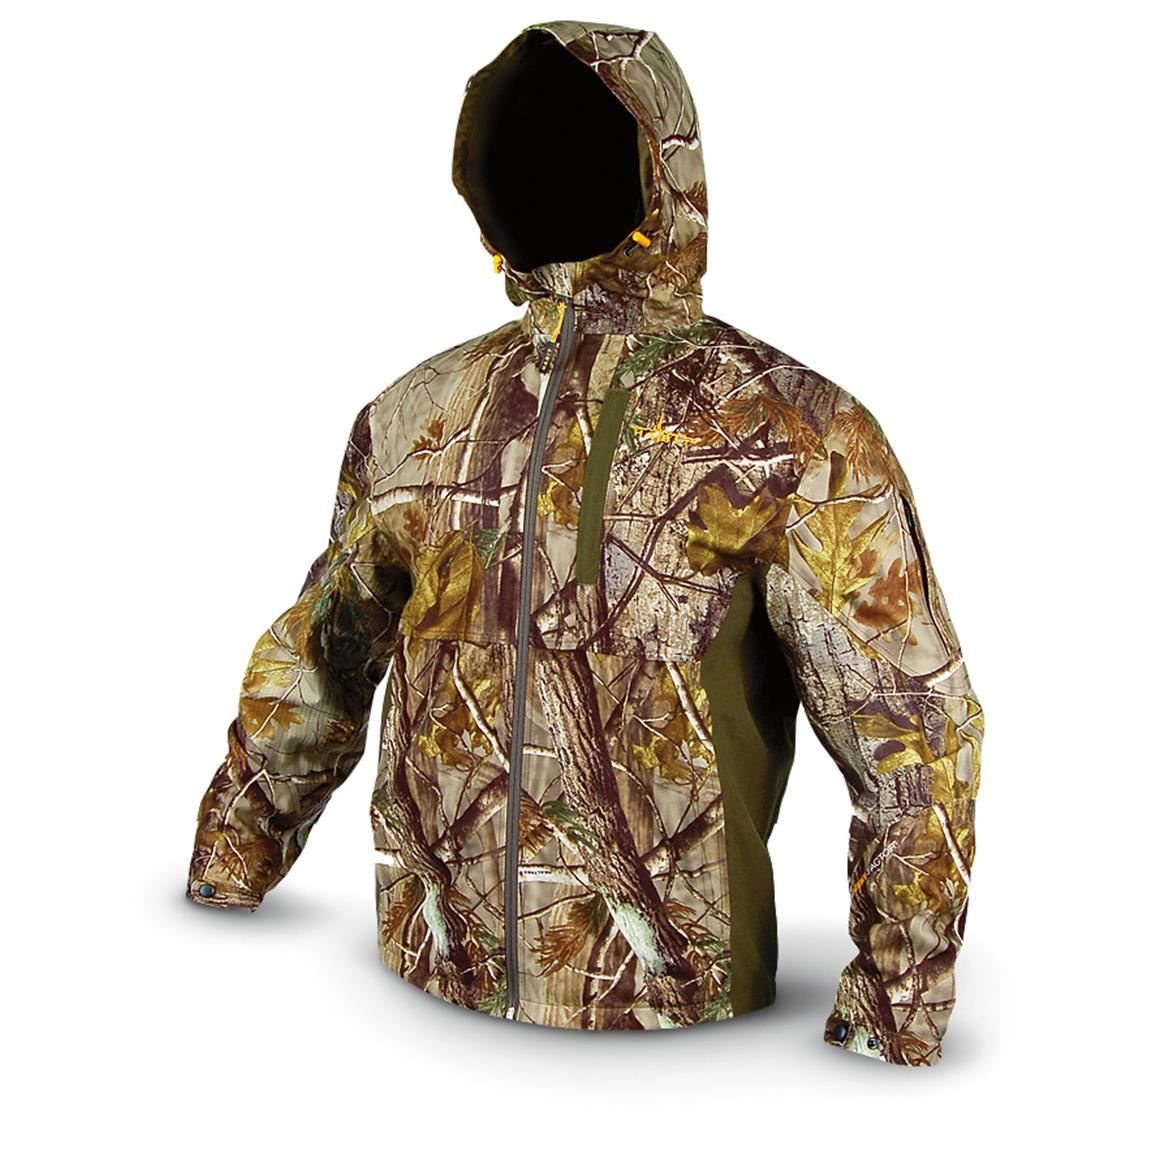 fc853e59c0644 ... Men's Hunting Clothing/; Camo Jackets · Habit Waterproof Tricot Jacket,  Realtree Xtra Nightforest